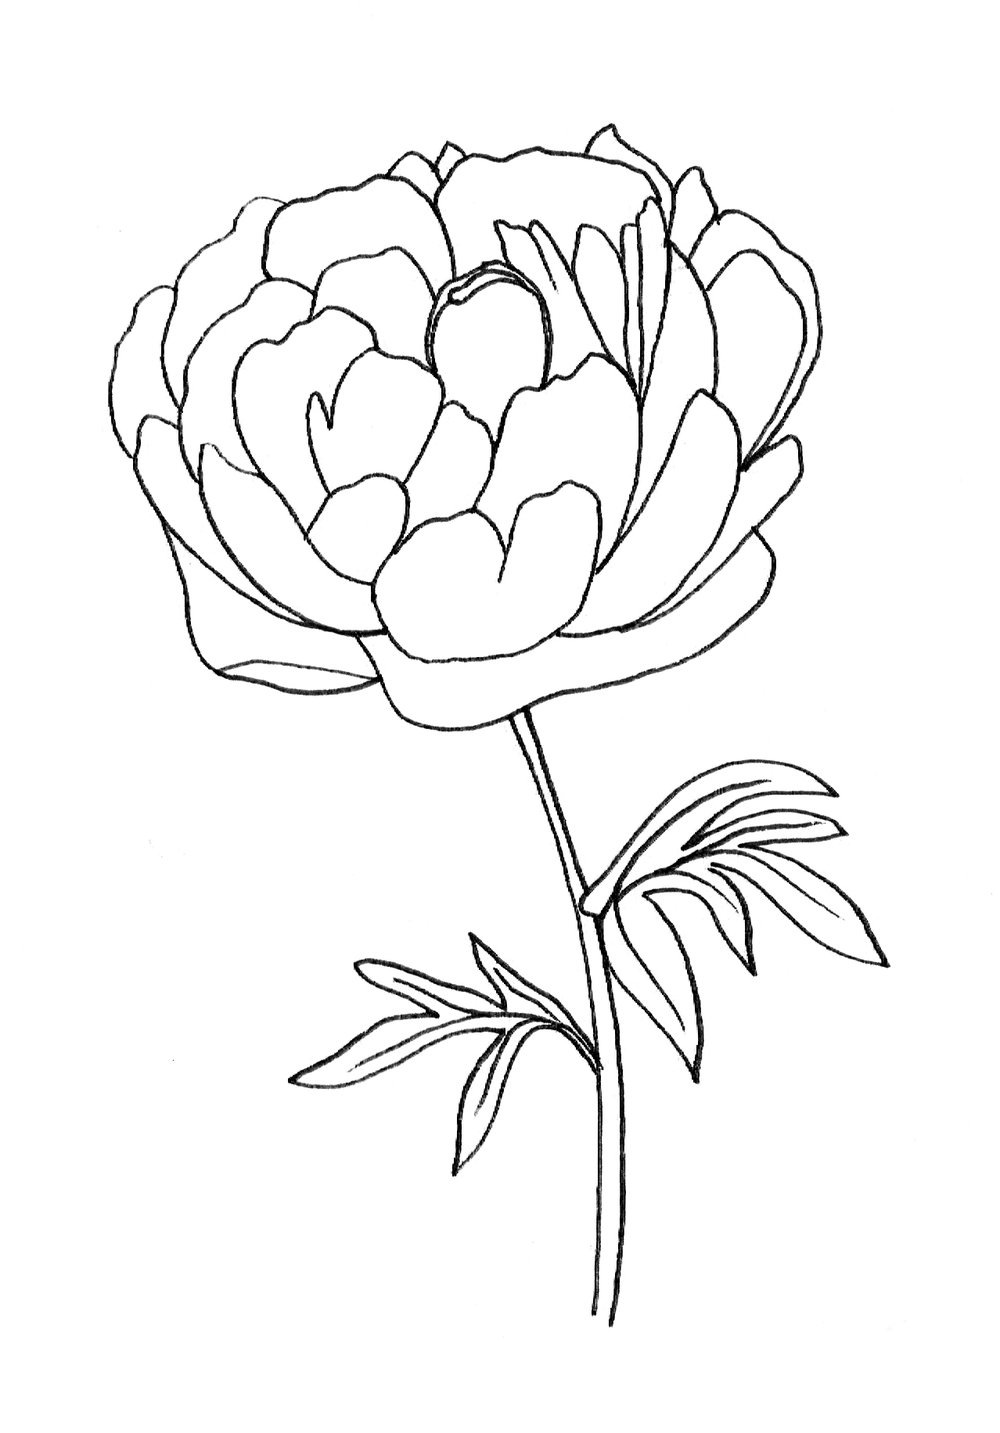 03-Shading Technique on Florals-Peony Outline.jpg